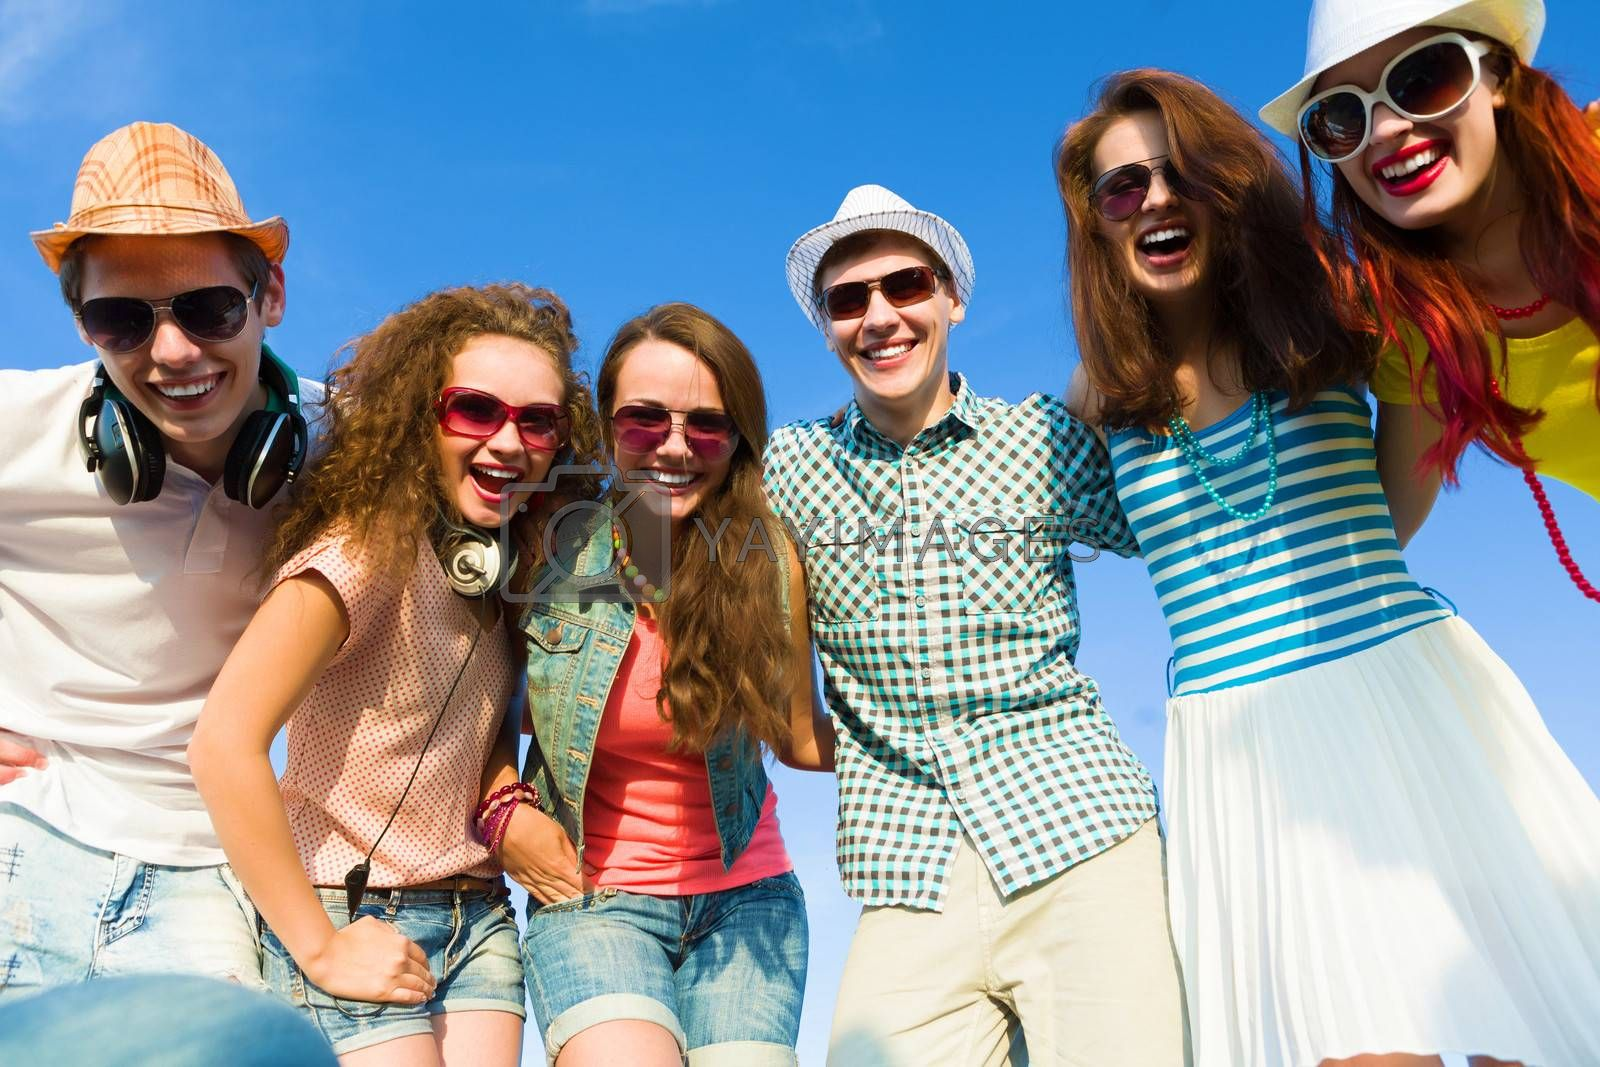 Image of young people having fun. Summer vacation